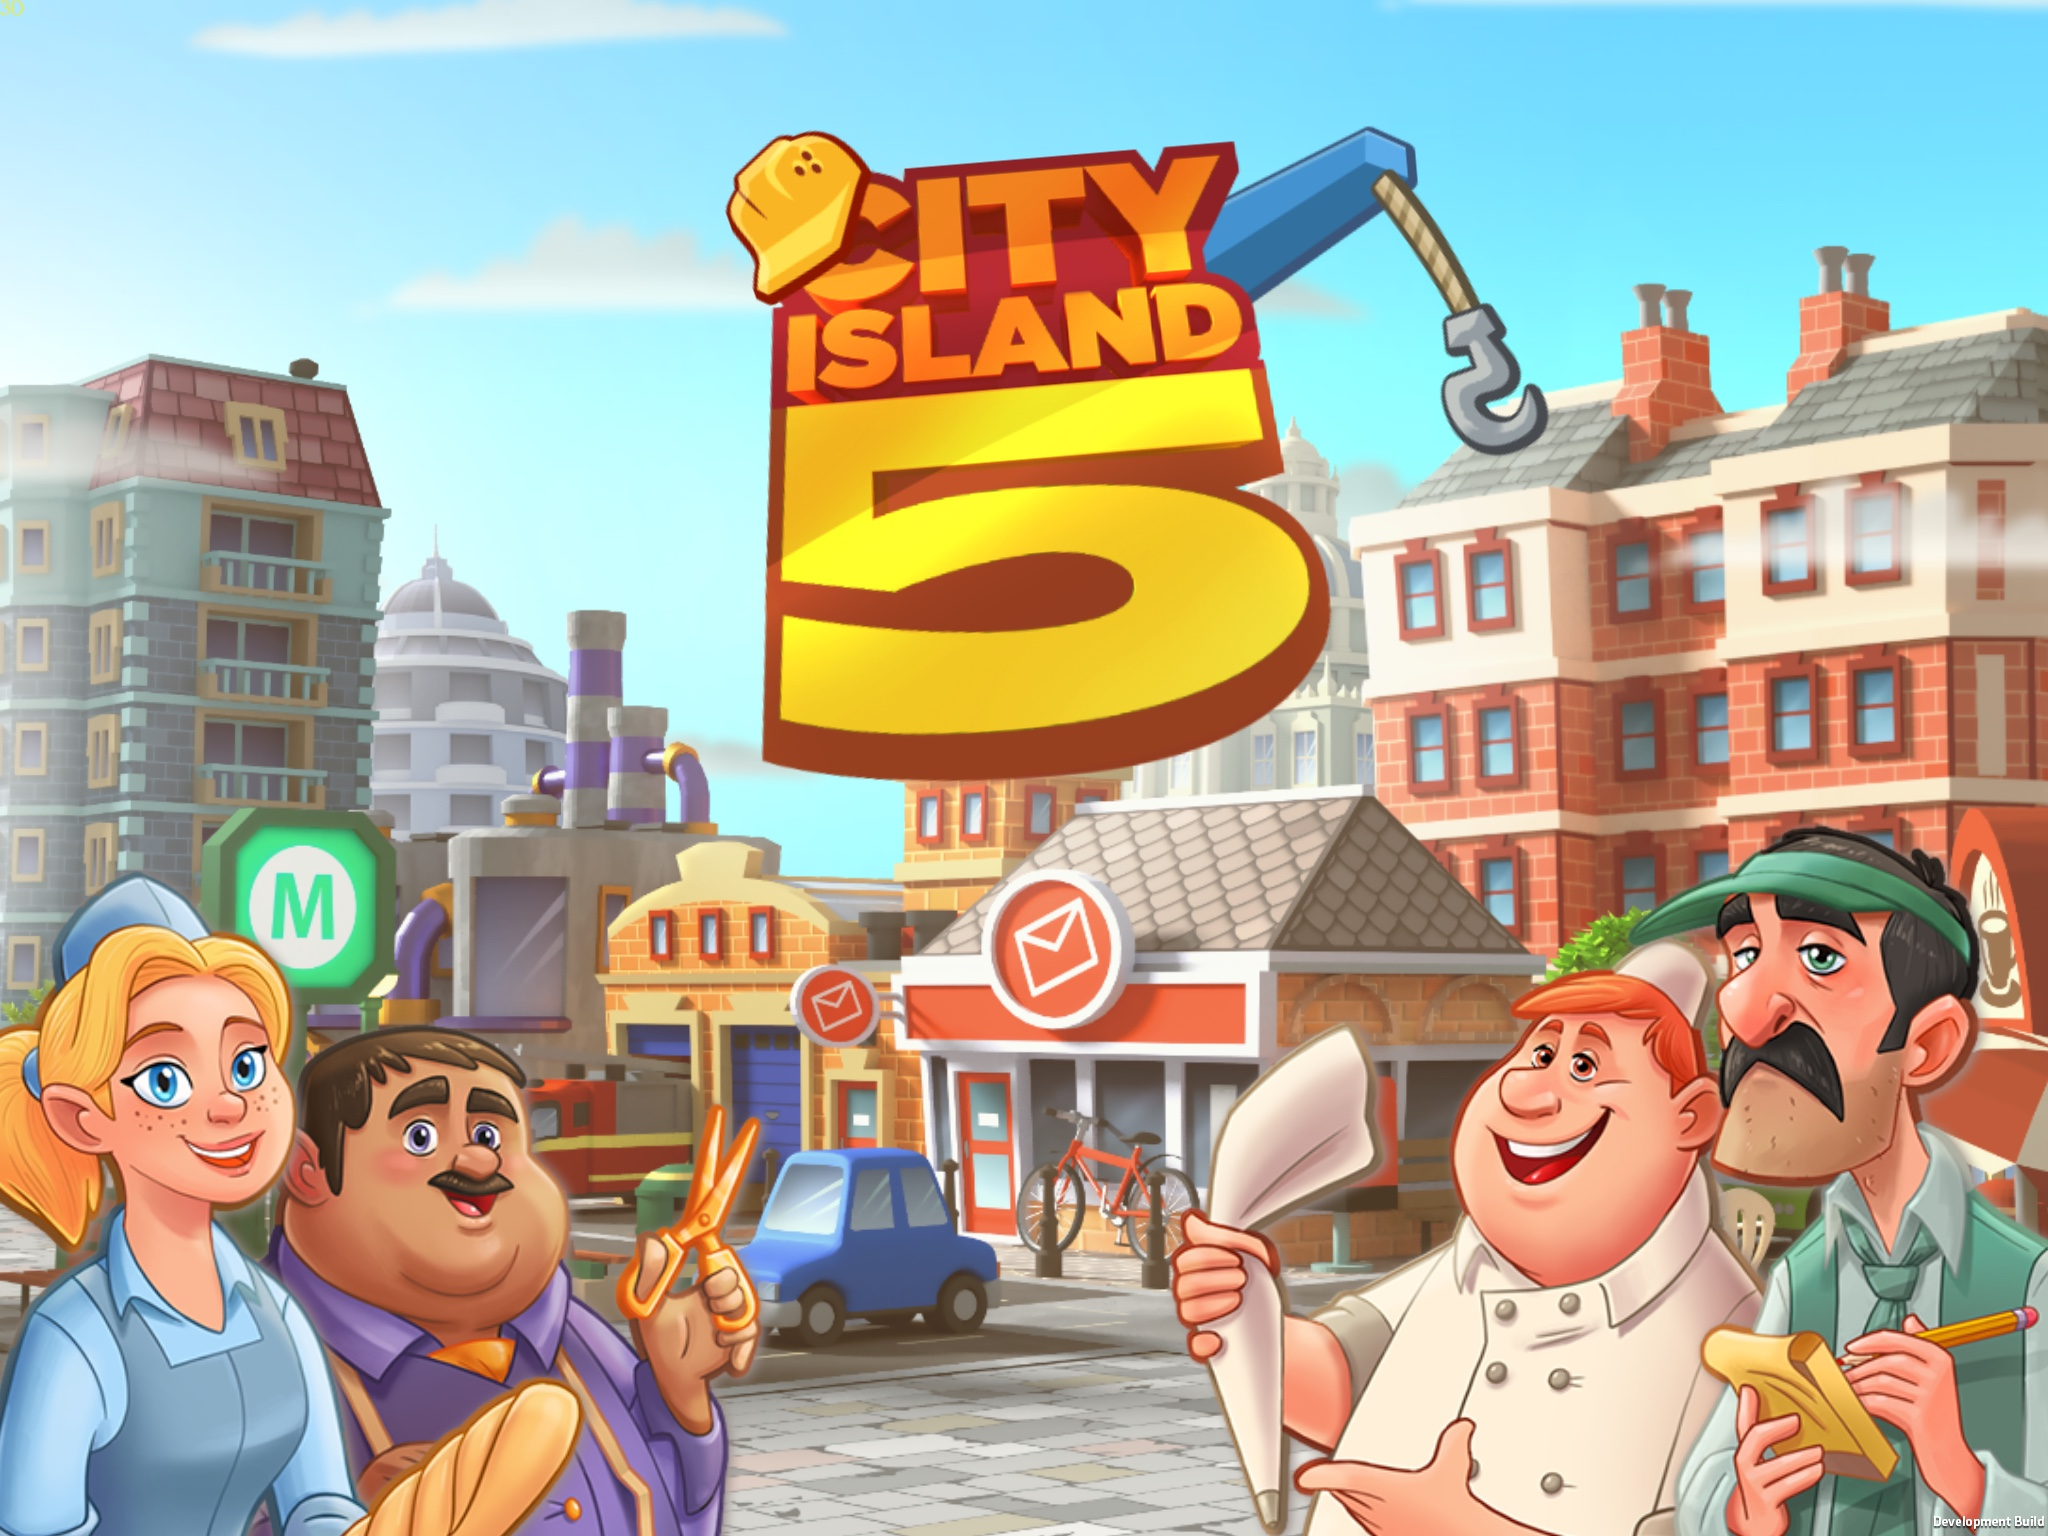 City Island 5 – coming in 2017!